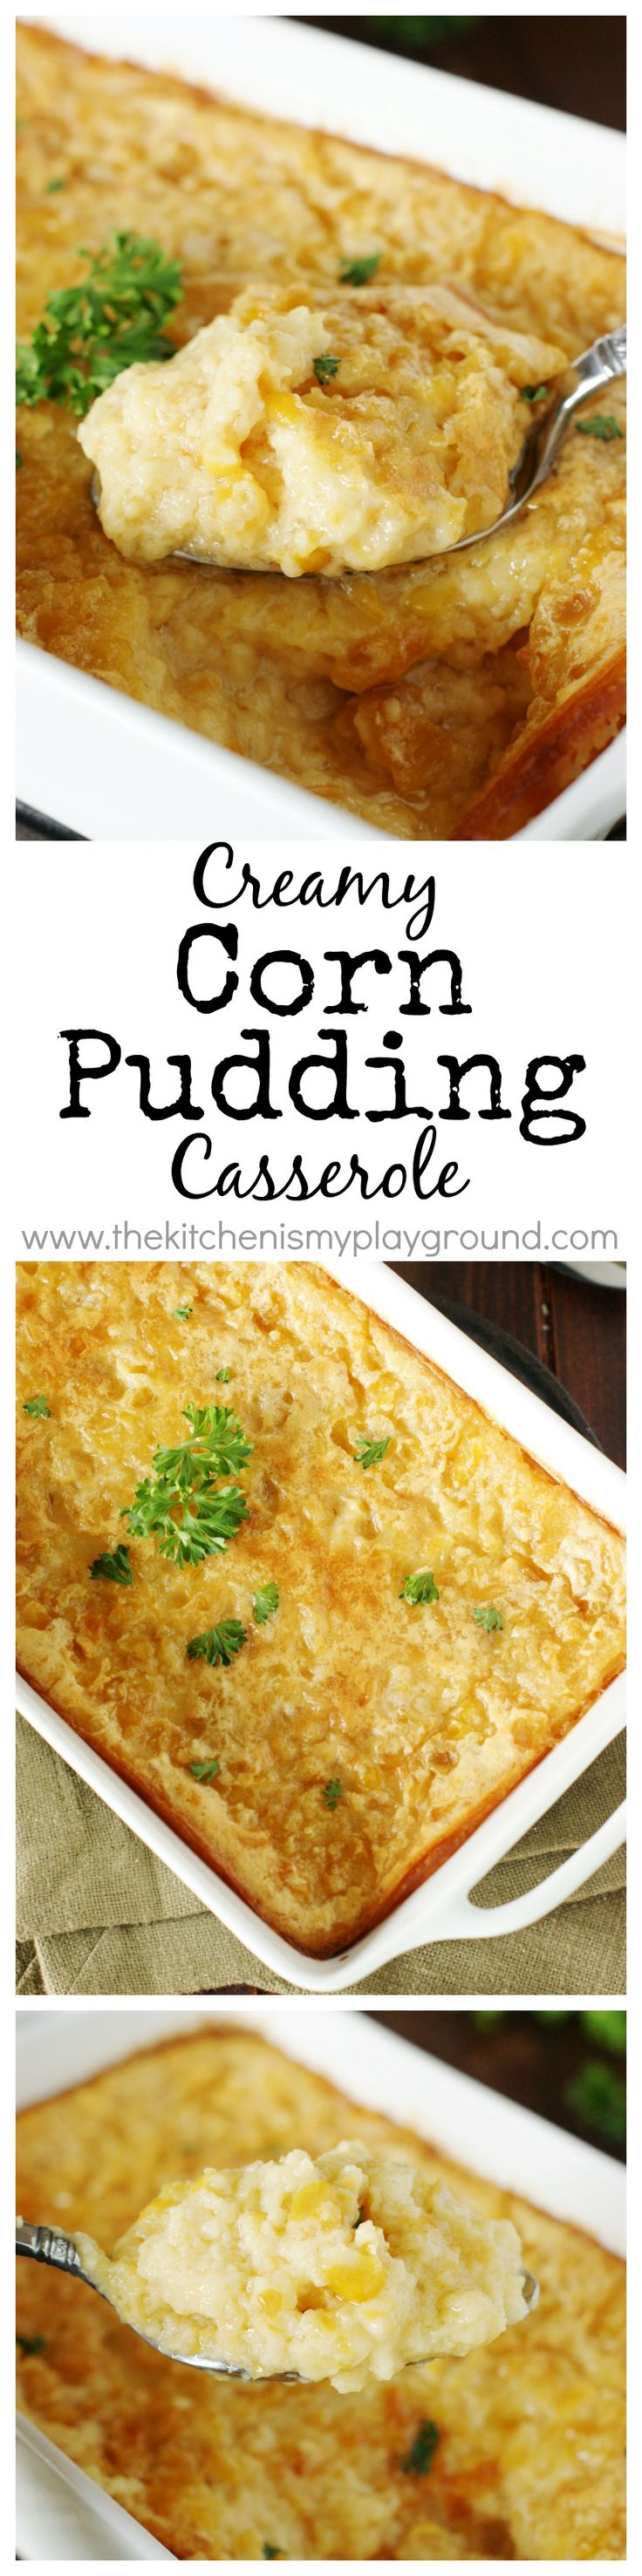 Corn Pudding Casserole ~ creamy & comforting, compliments of Hilda Crocketts Chesapeake House!  www.thekitchenismyplayground.com (Fall Recipes Casserole)